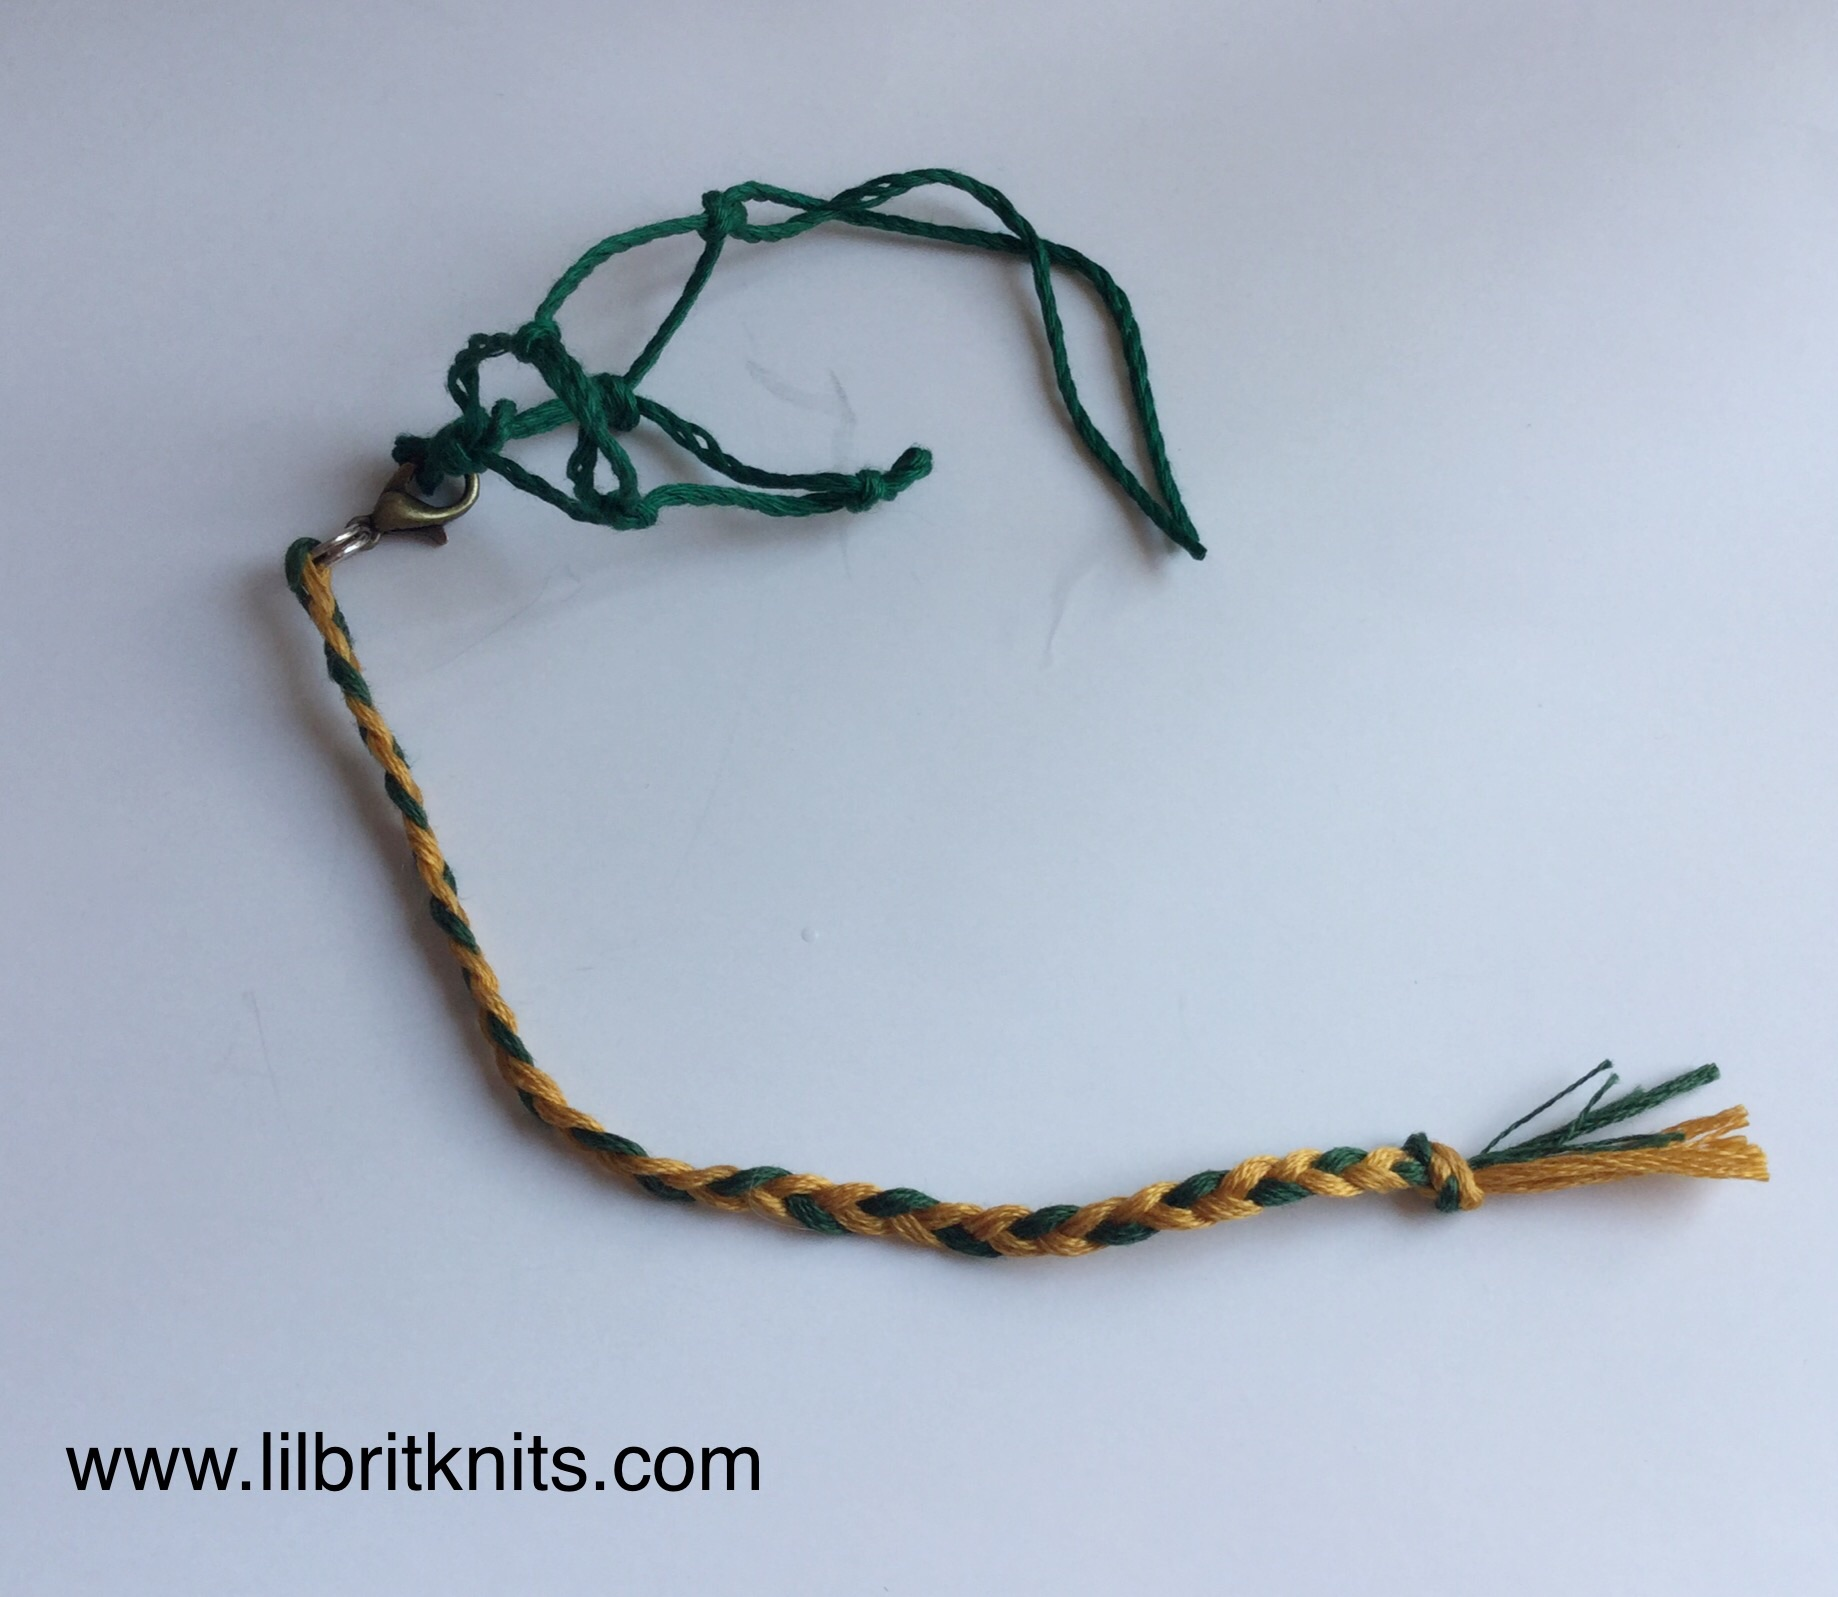 Model Horse Rope Halter and Lead Rope